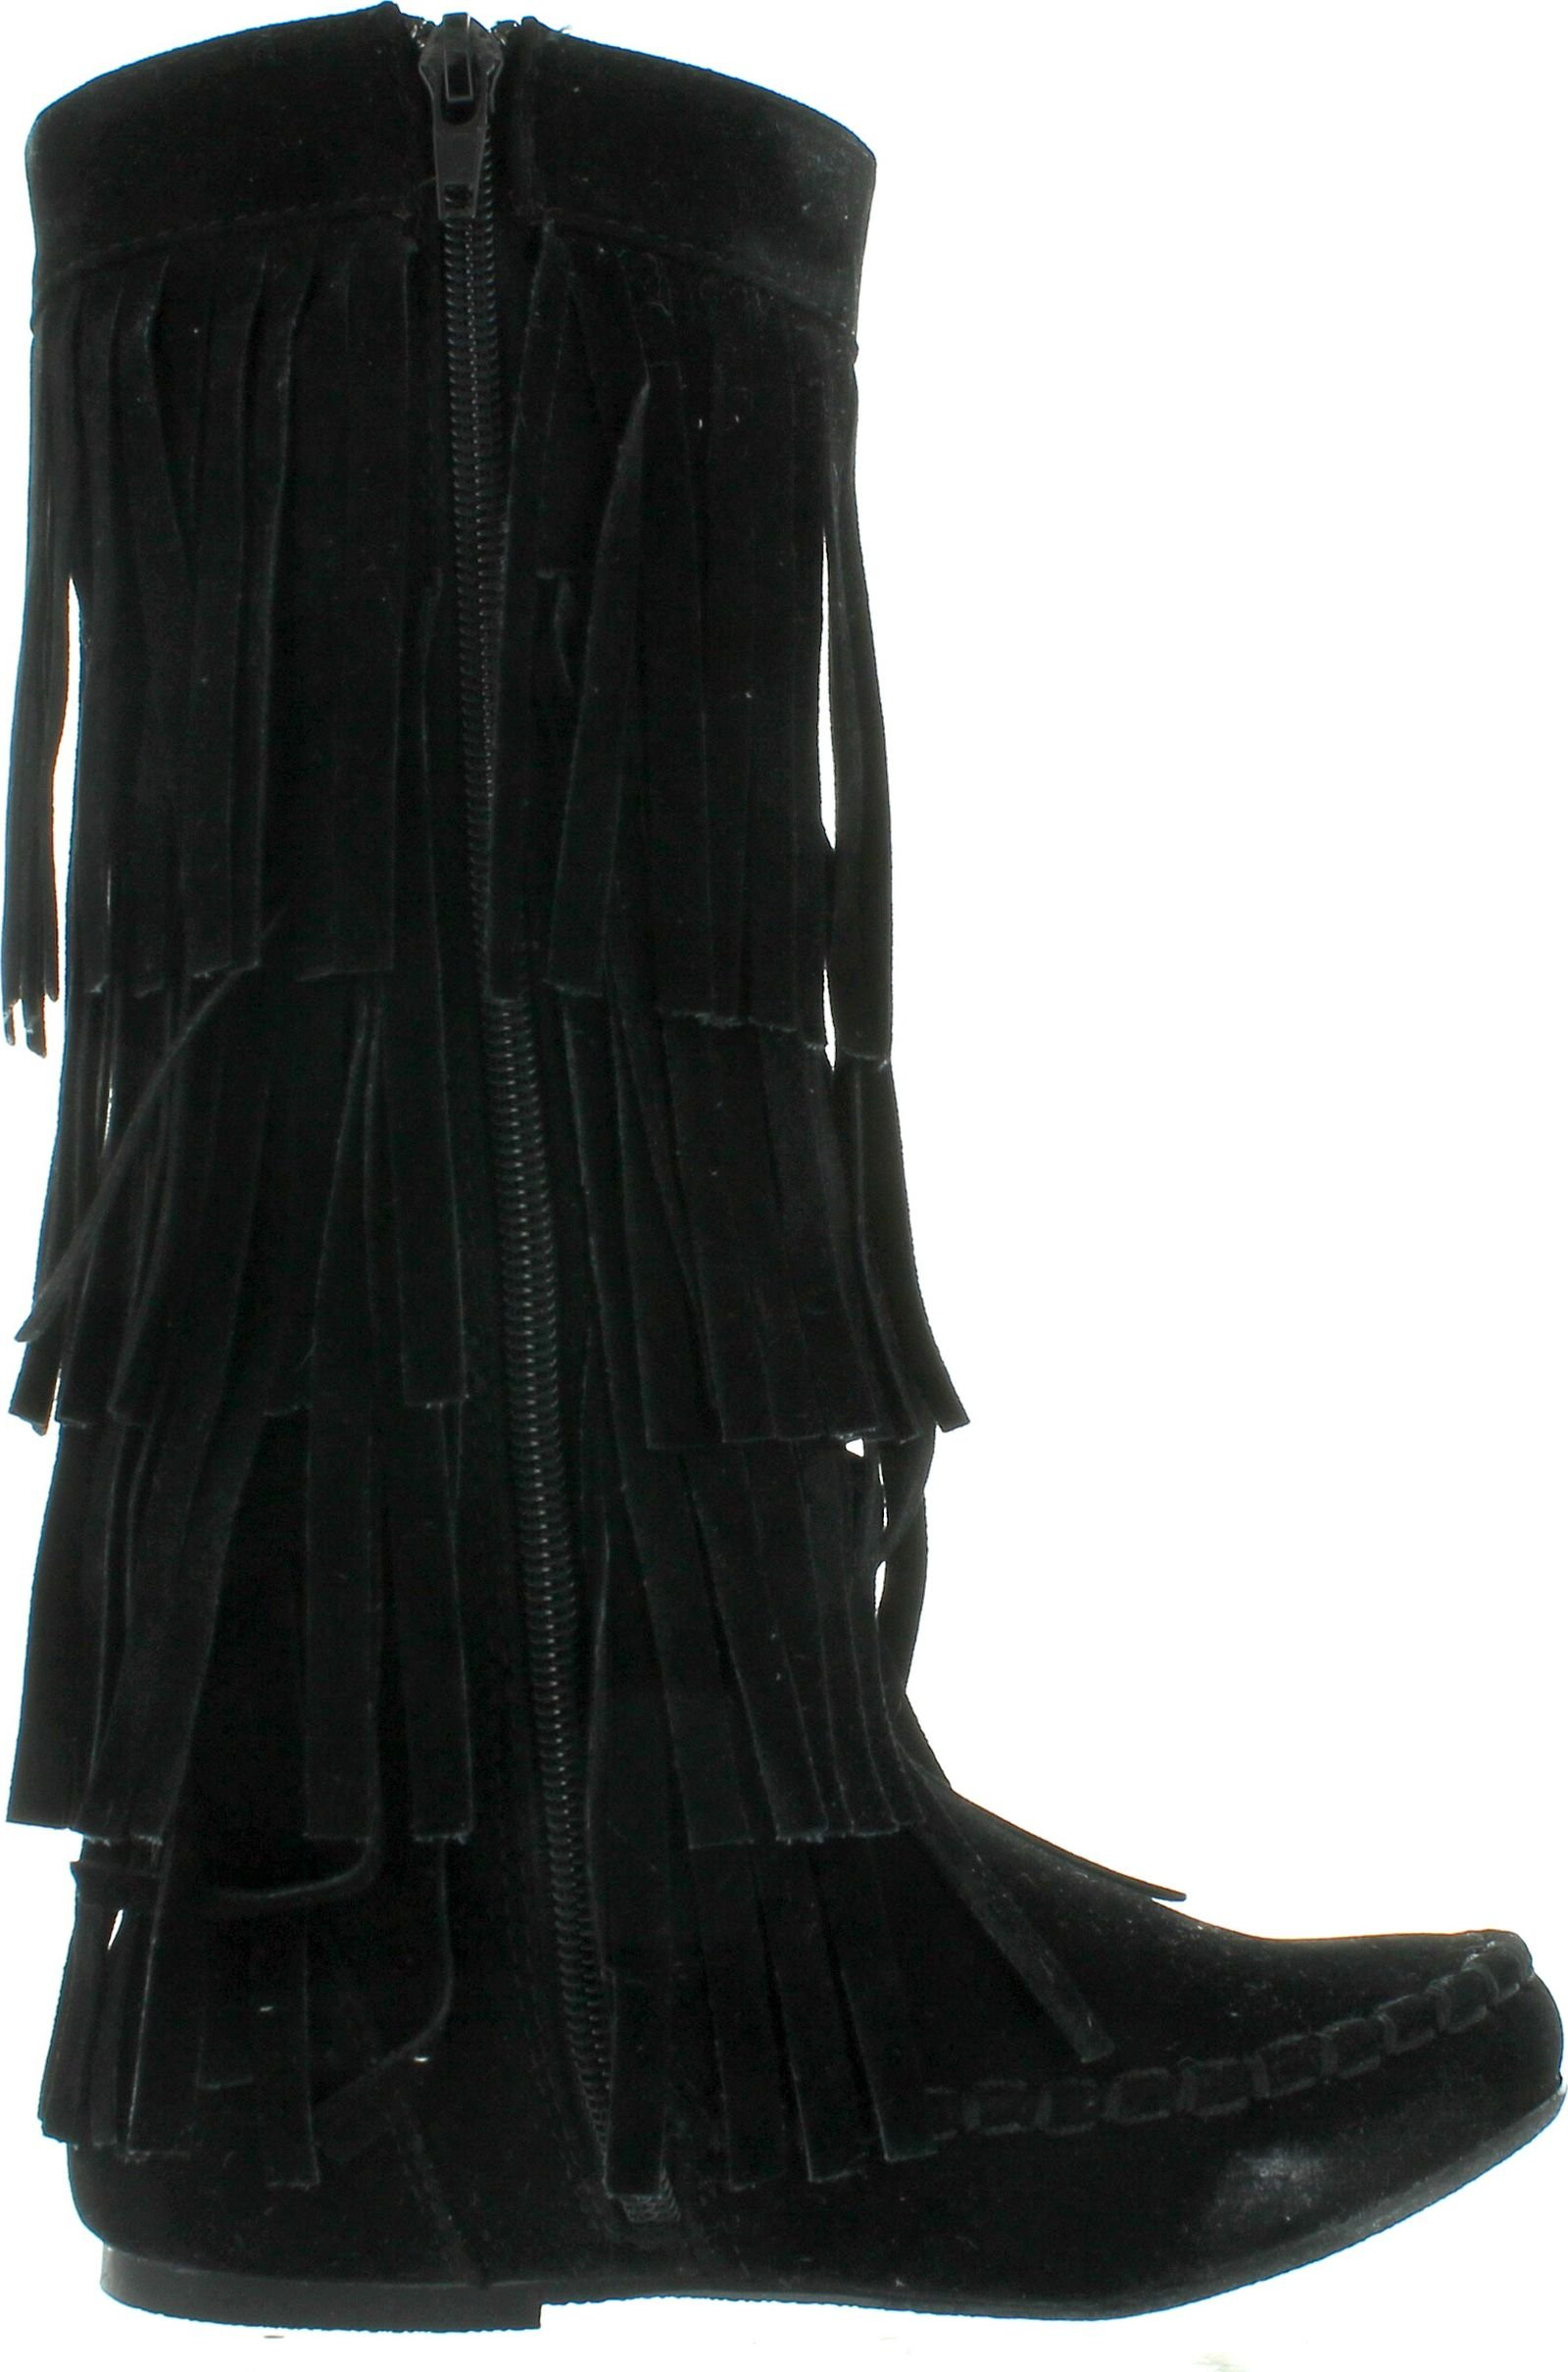 I LOVE KIDS Ava-18K Children's 3-Layers Fringe Moccasin Style Mid-Calf Boots,Black,13 by I LOVE KIDS (Image #2)